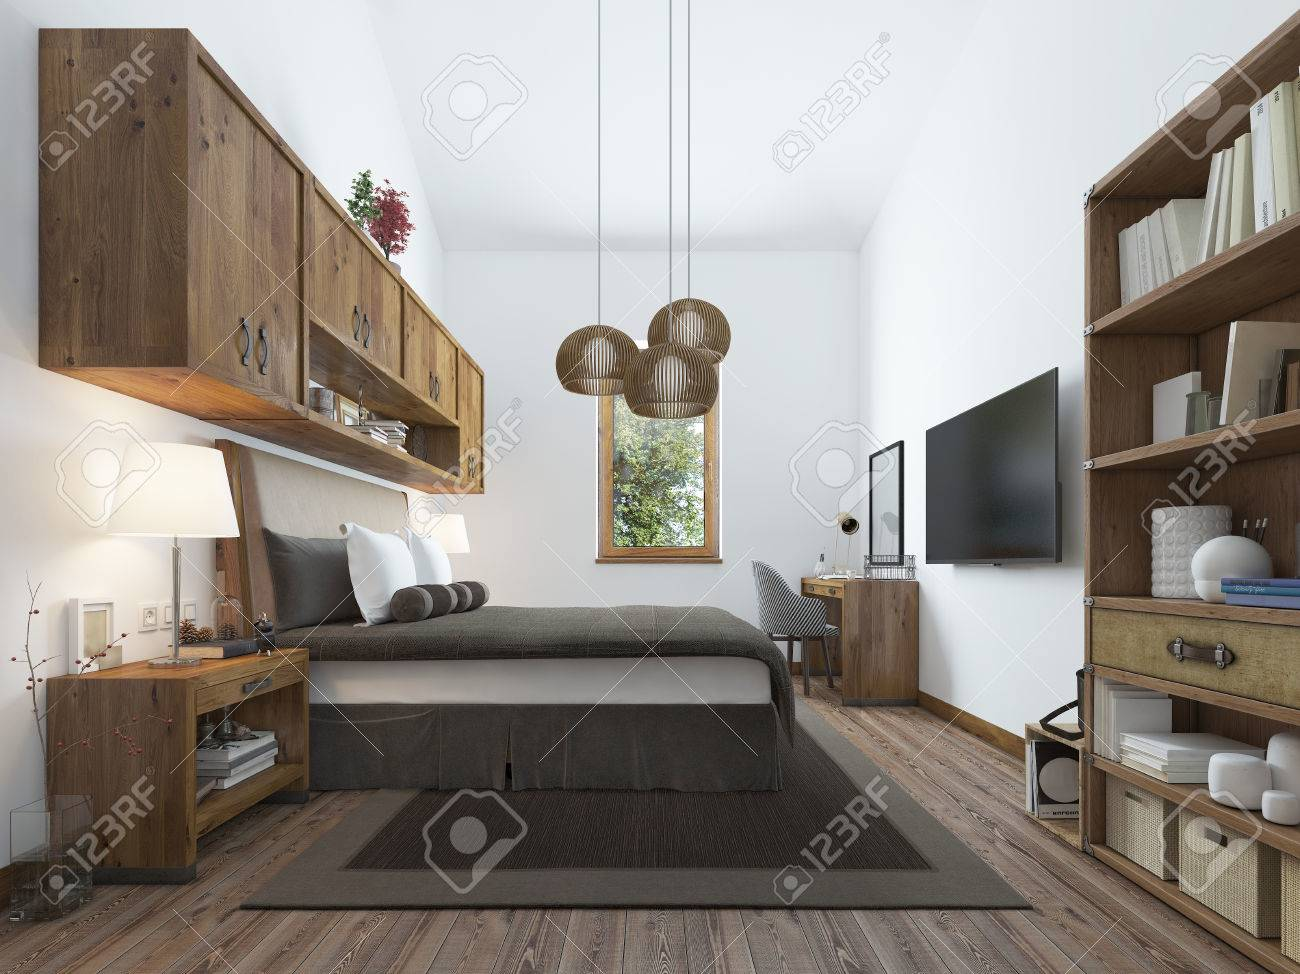 Large Bedroom In Modern Style With Elements Of A Rustic Loft Stock Photo Picture And Royalty Free Image Image 60564546